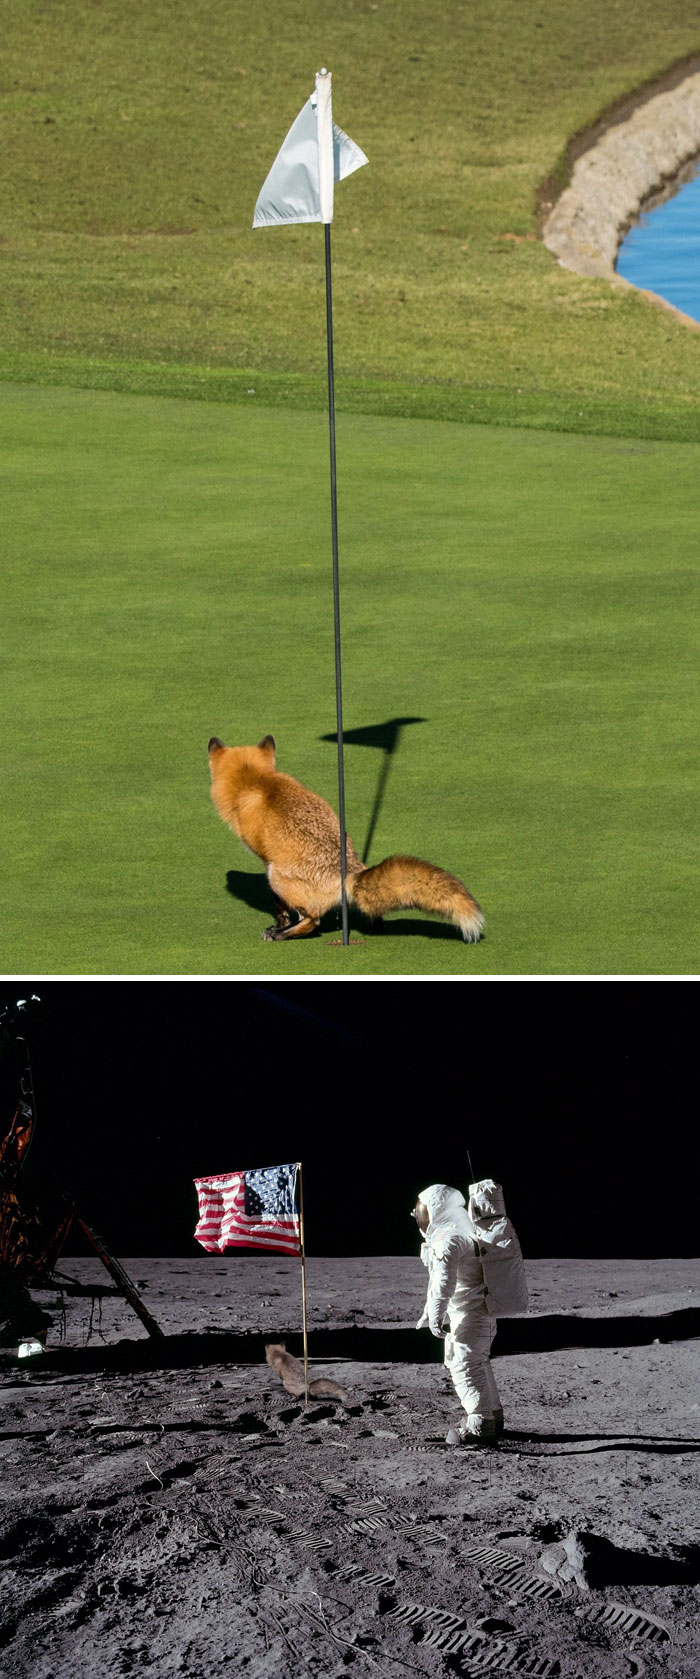 This Fox Pooing In A Golf Putting Hole